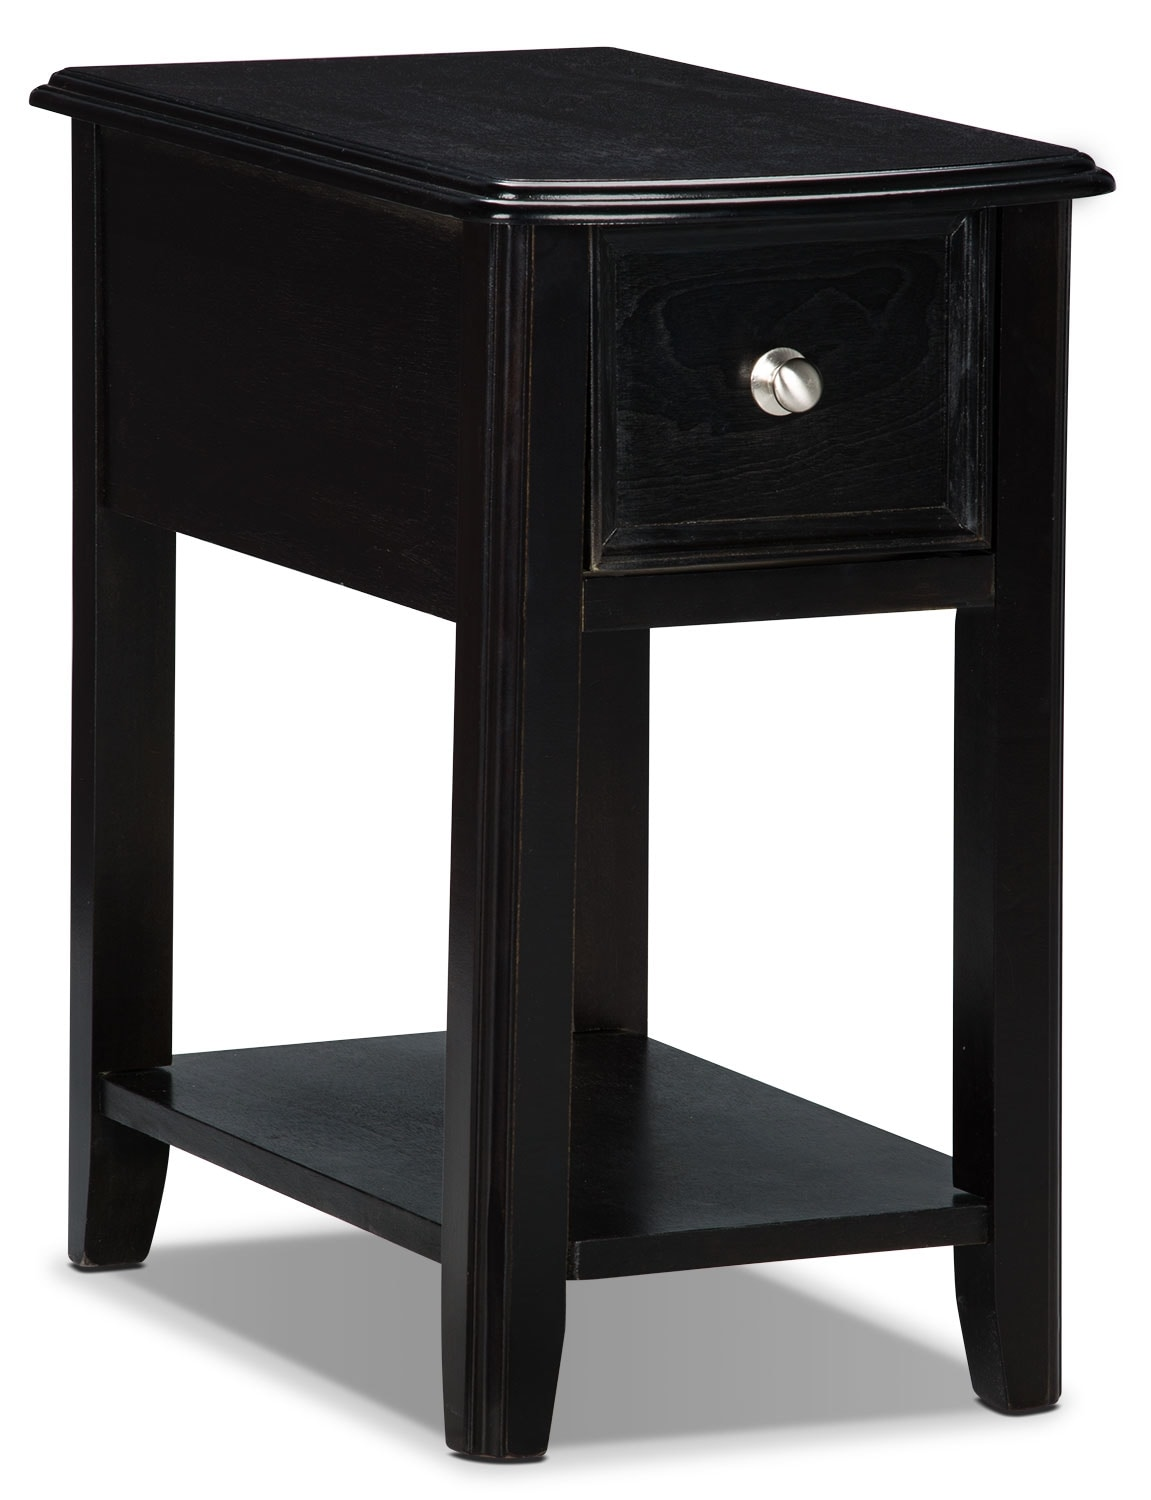 Sydney Accent Table - Espresso